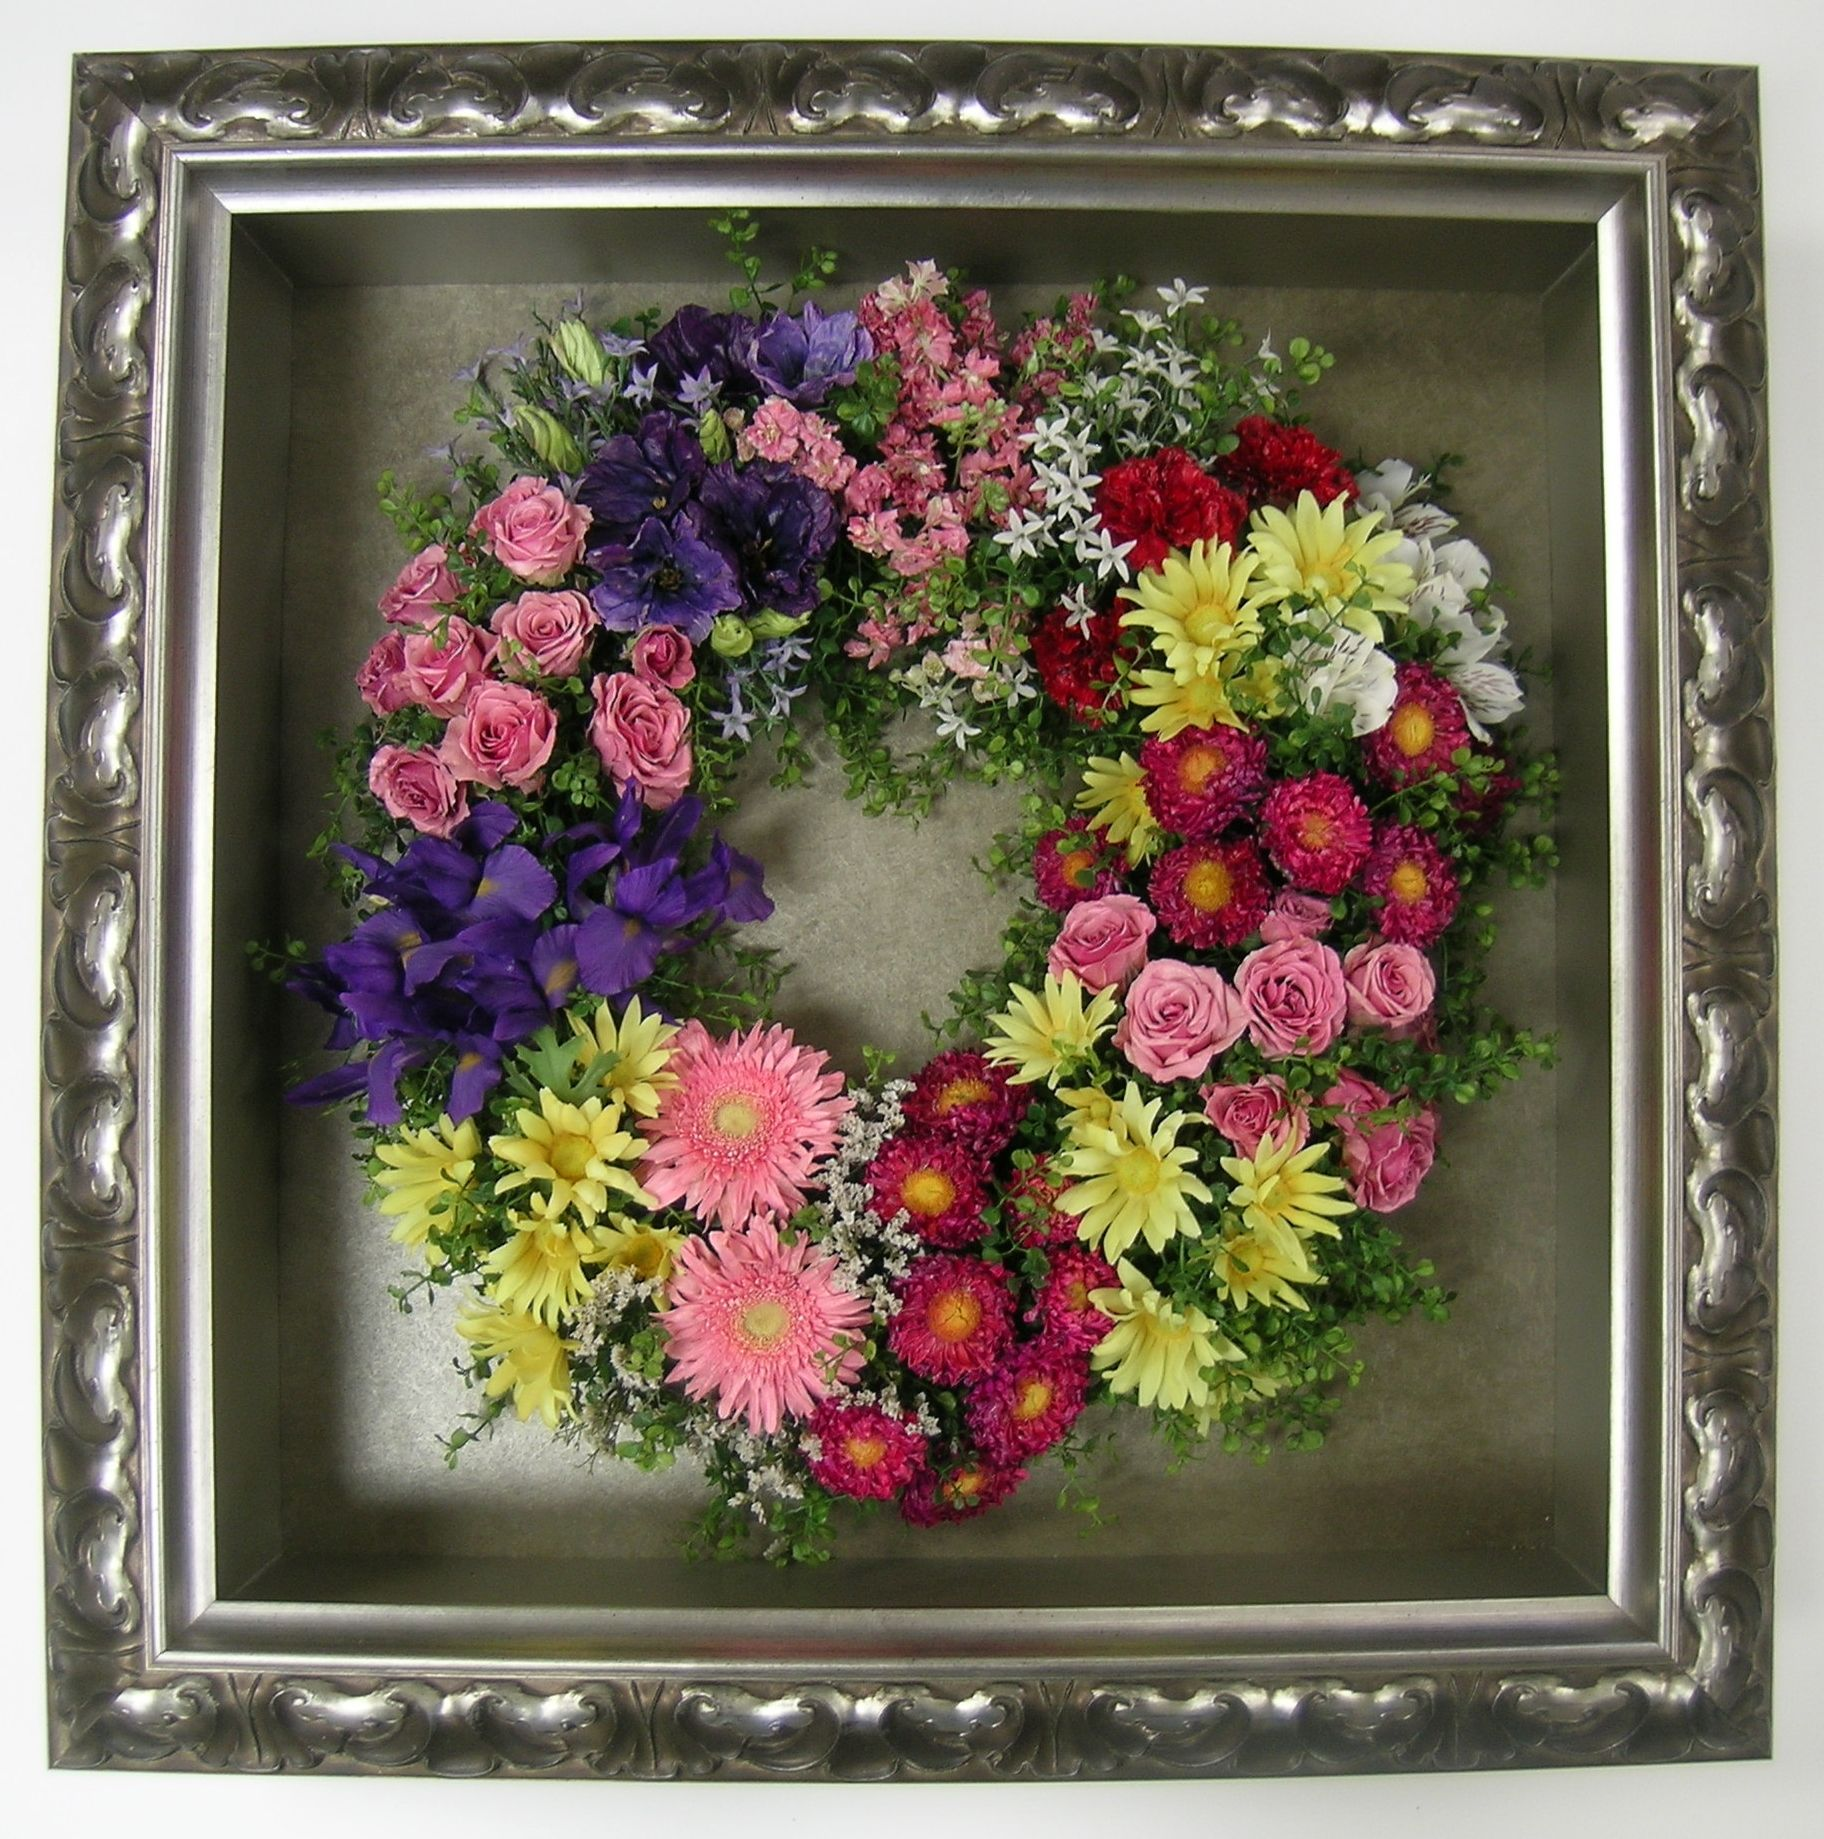 Pin by floral keepsakes on funeral and memorial flowers and tributes preserving flowers memorial flowers shadow box funeral keepsakes wreaths diy crafts souvenirs garlands izmirmasajfo Choice Image